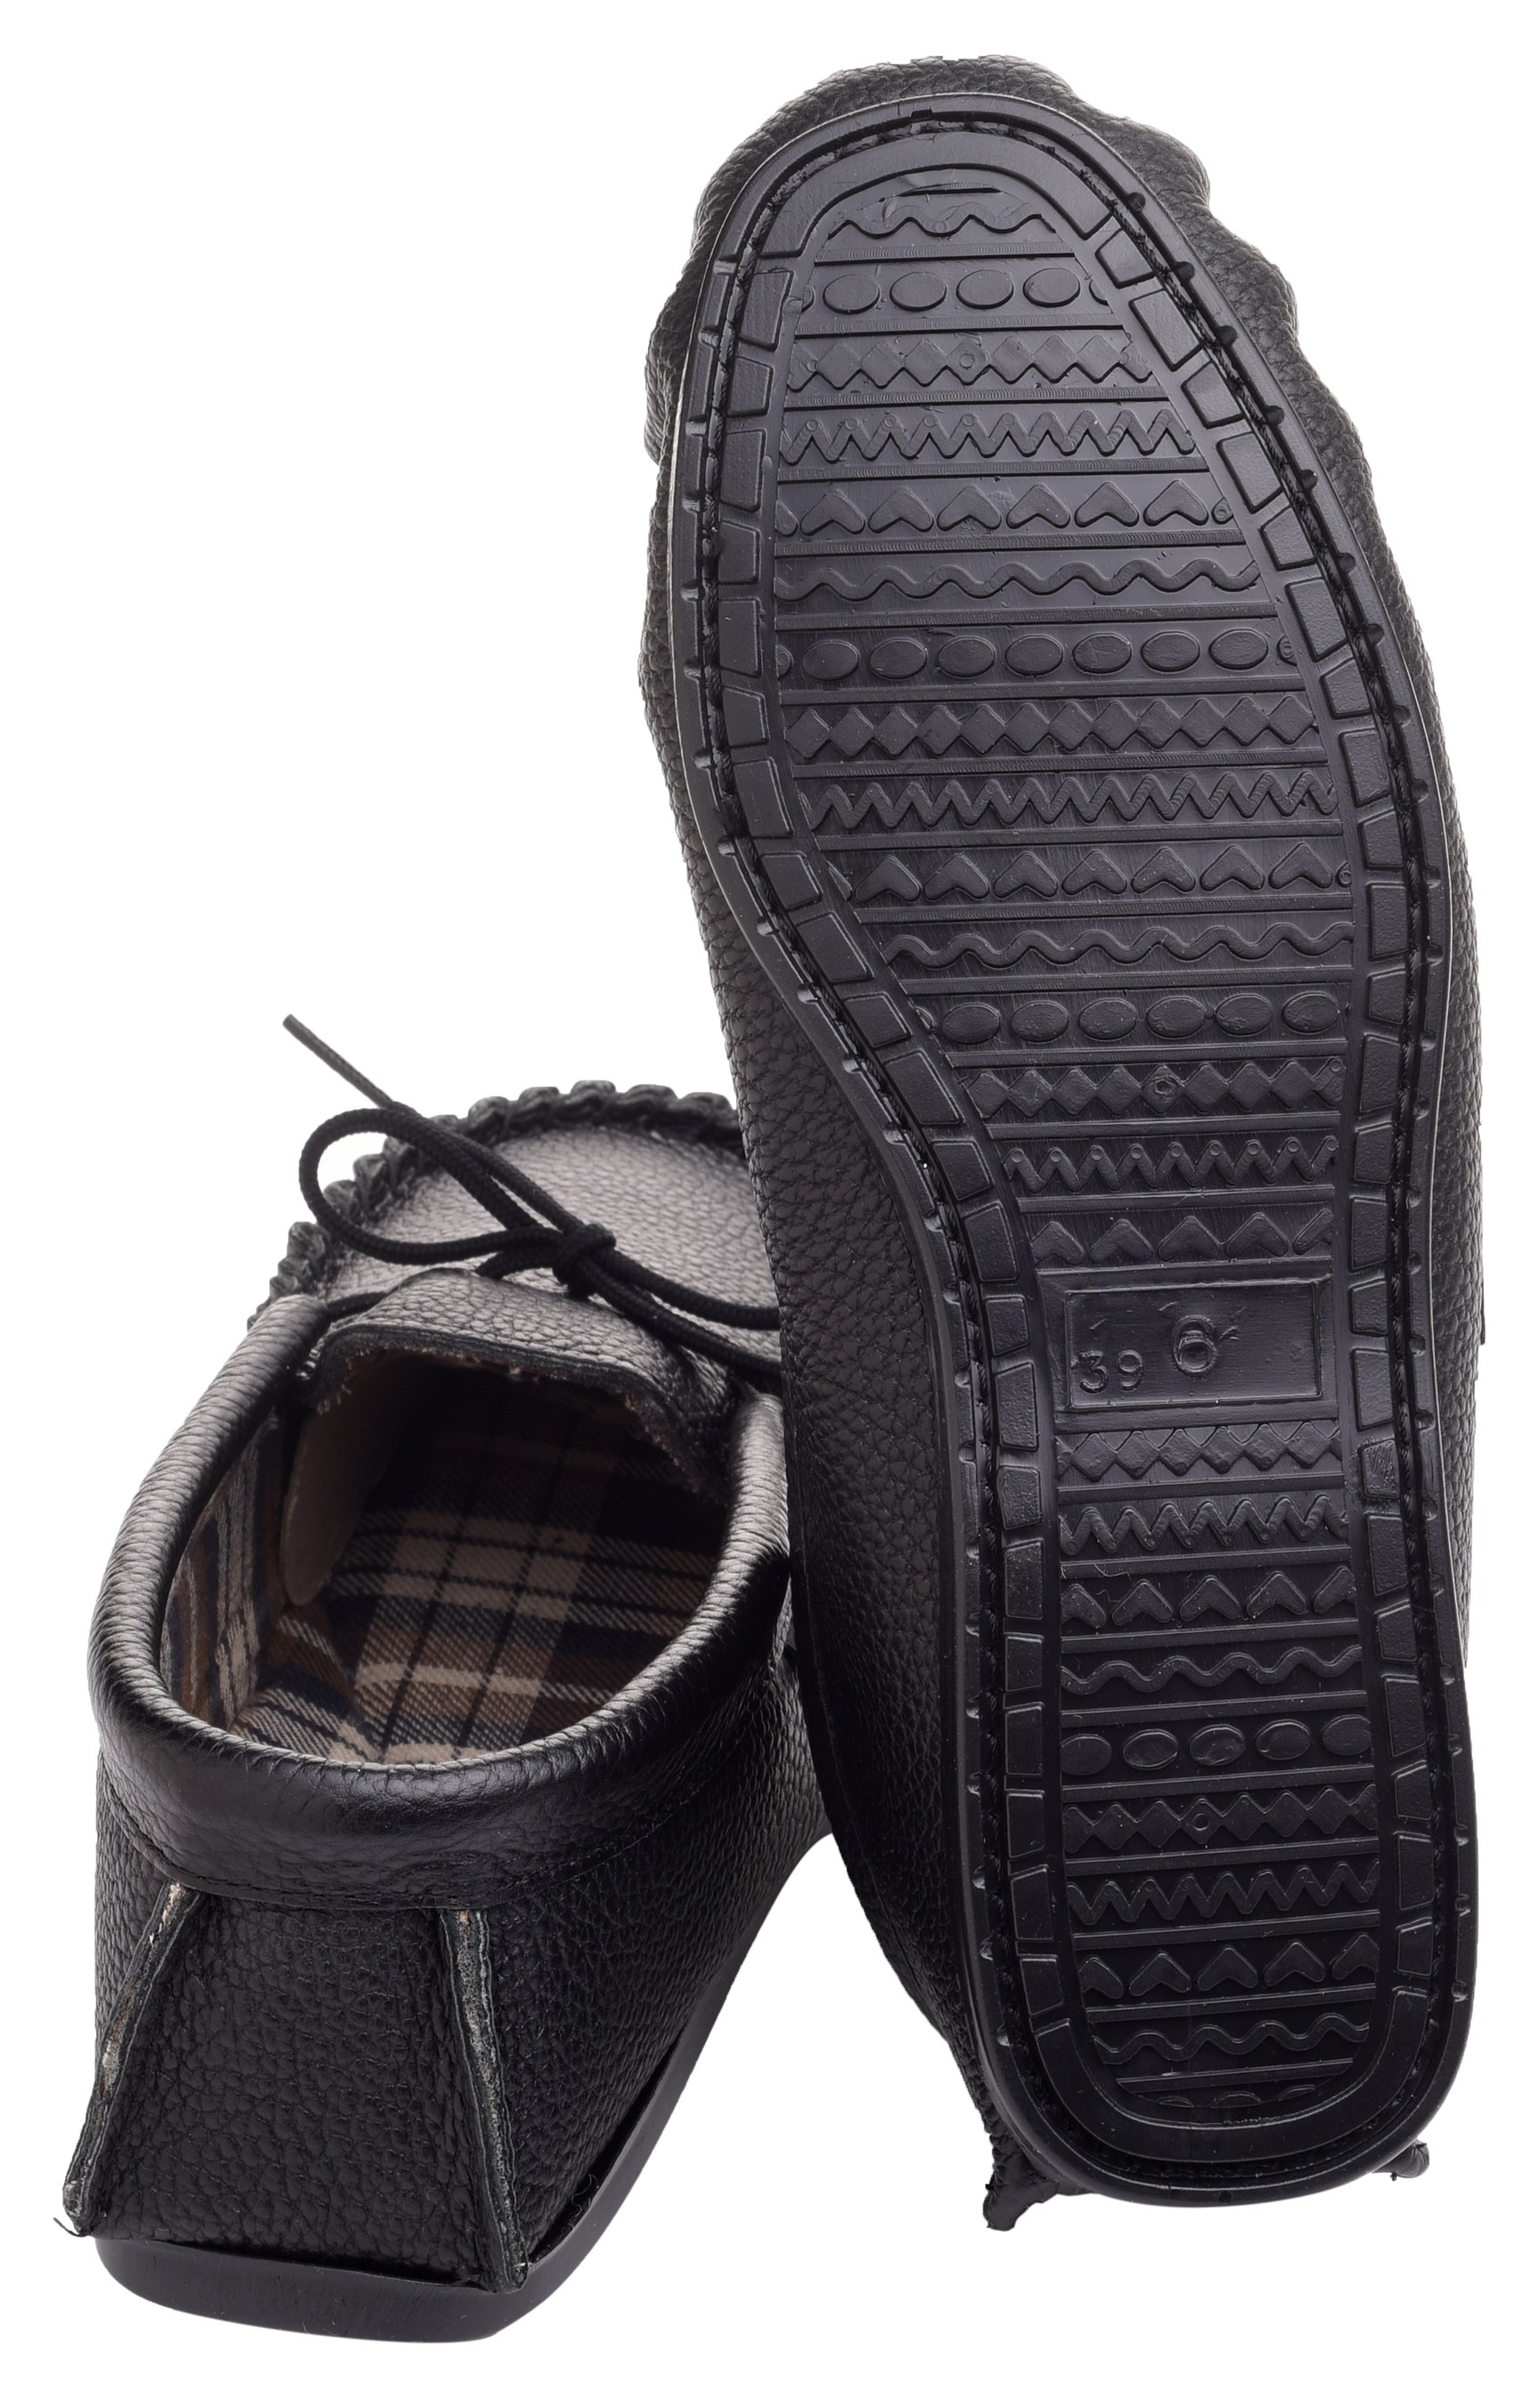 Leather-Moccasin-Slippers-UK-Made-for-Men-and-Ladies-Cotton-Lining-by-Lambland thumbnail 9